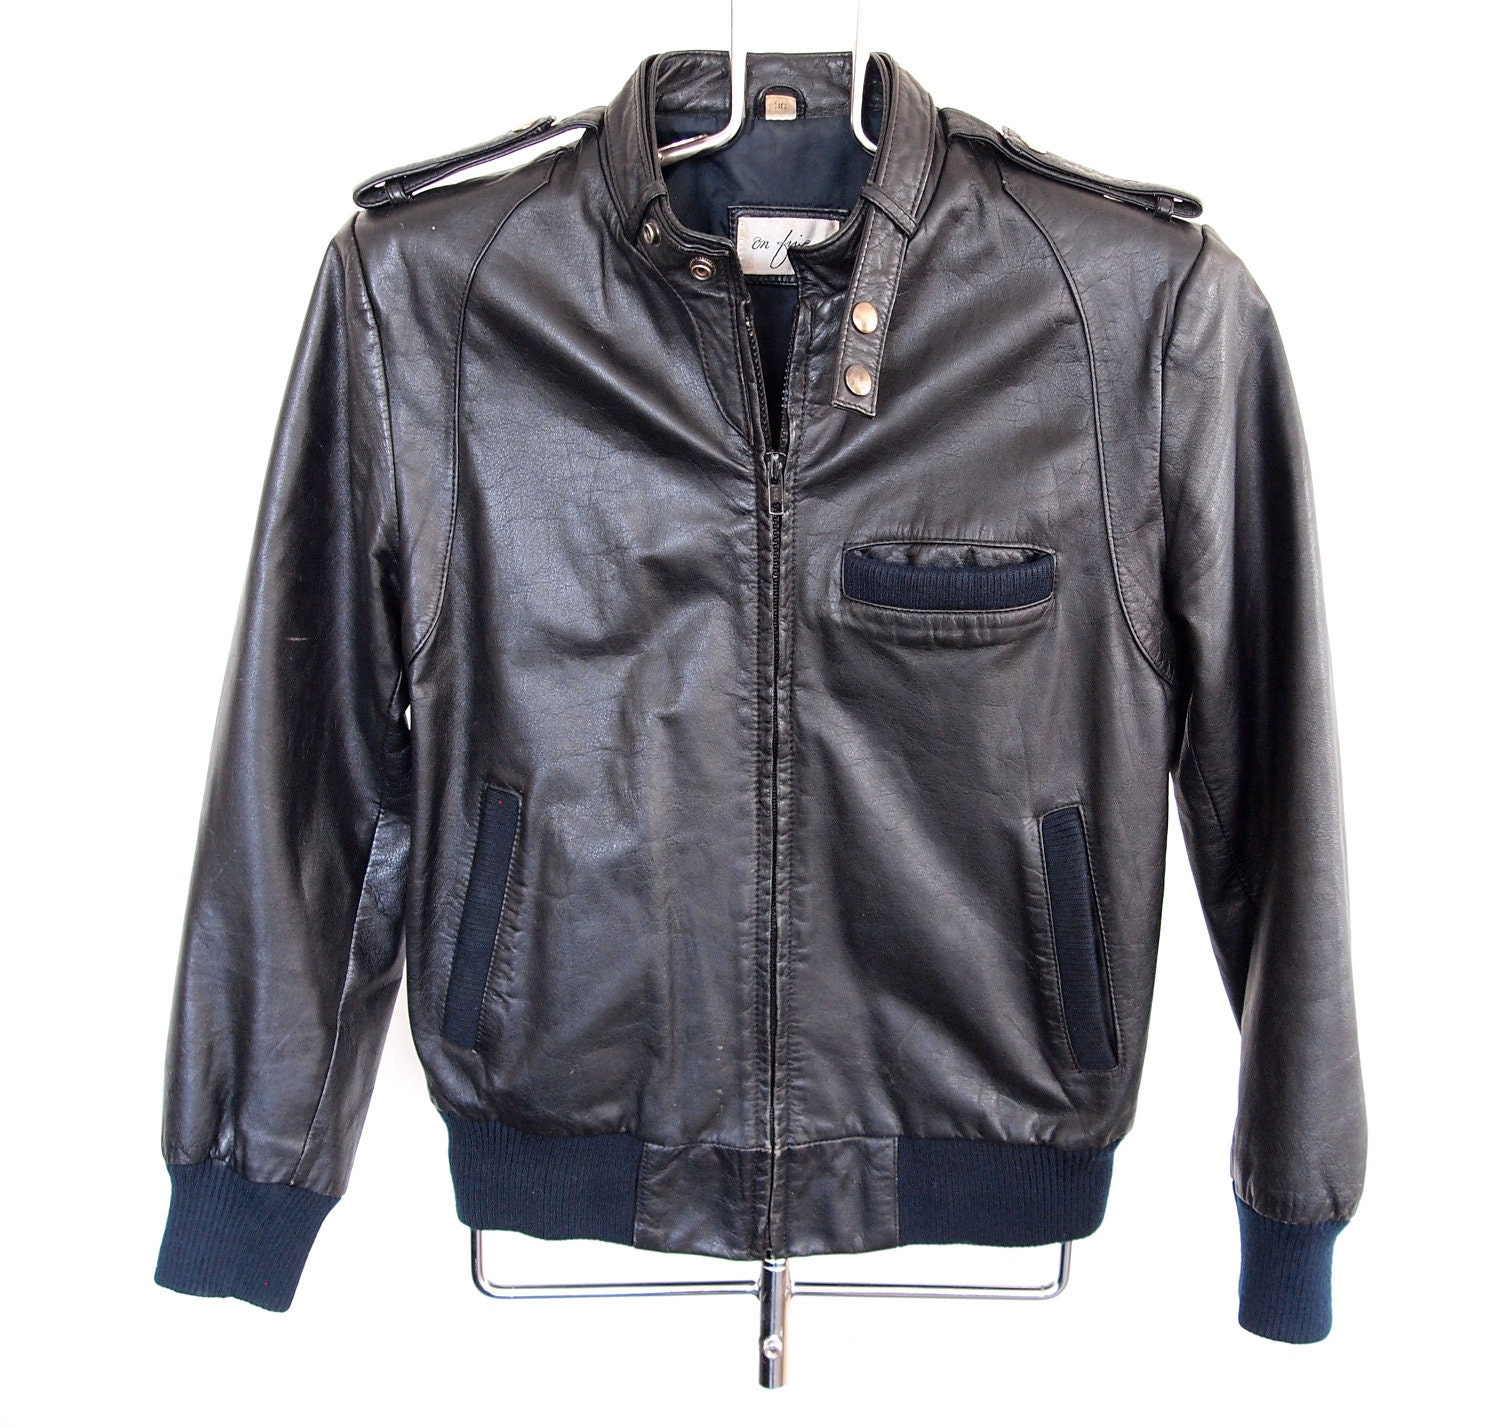 American made leather jackets